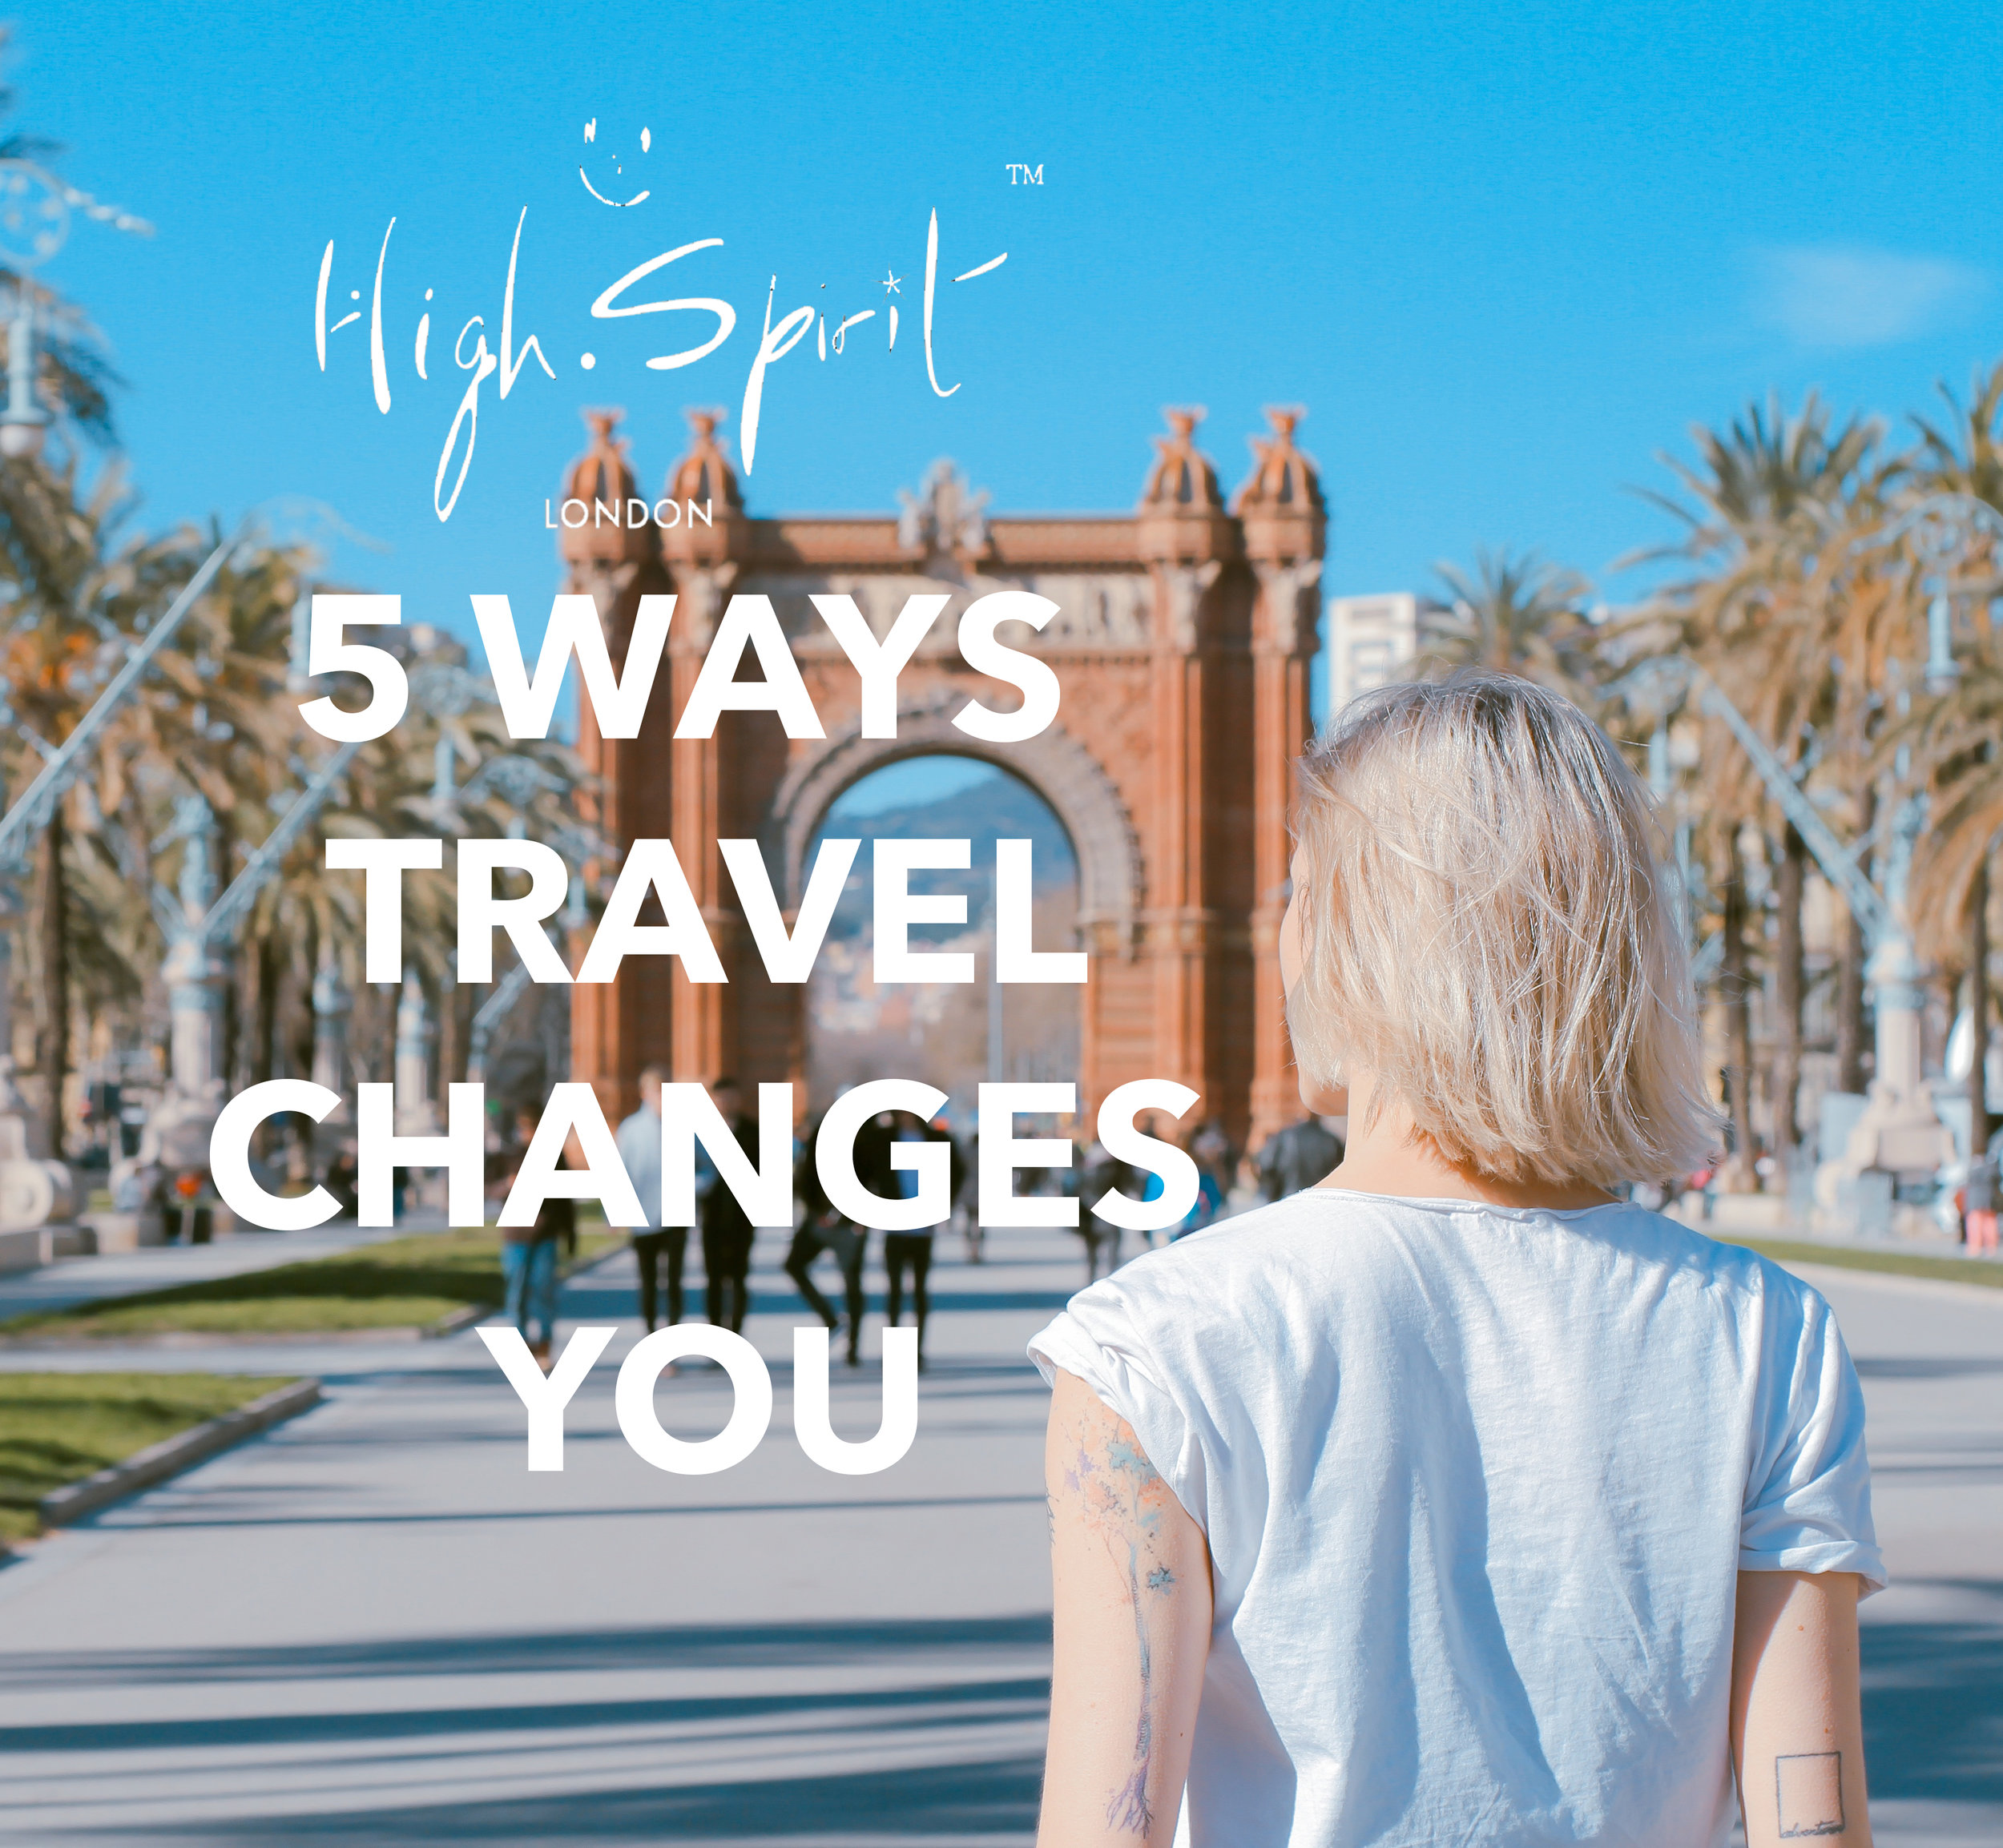 5 ways travel changes you